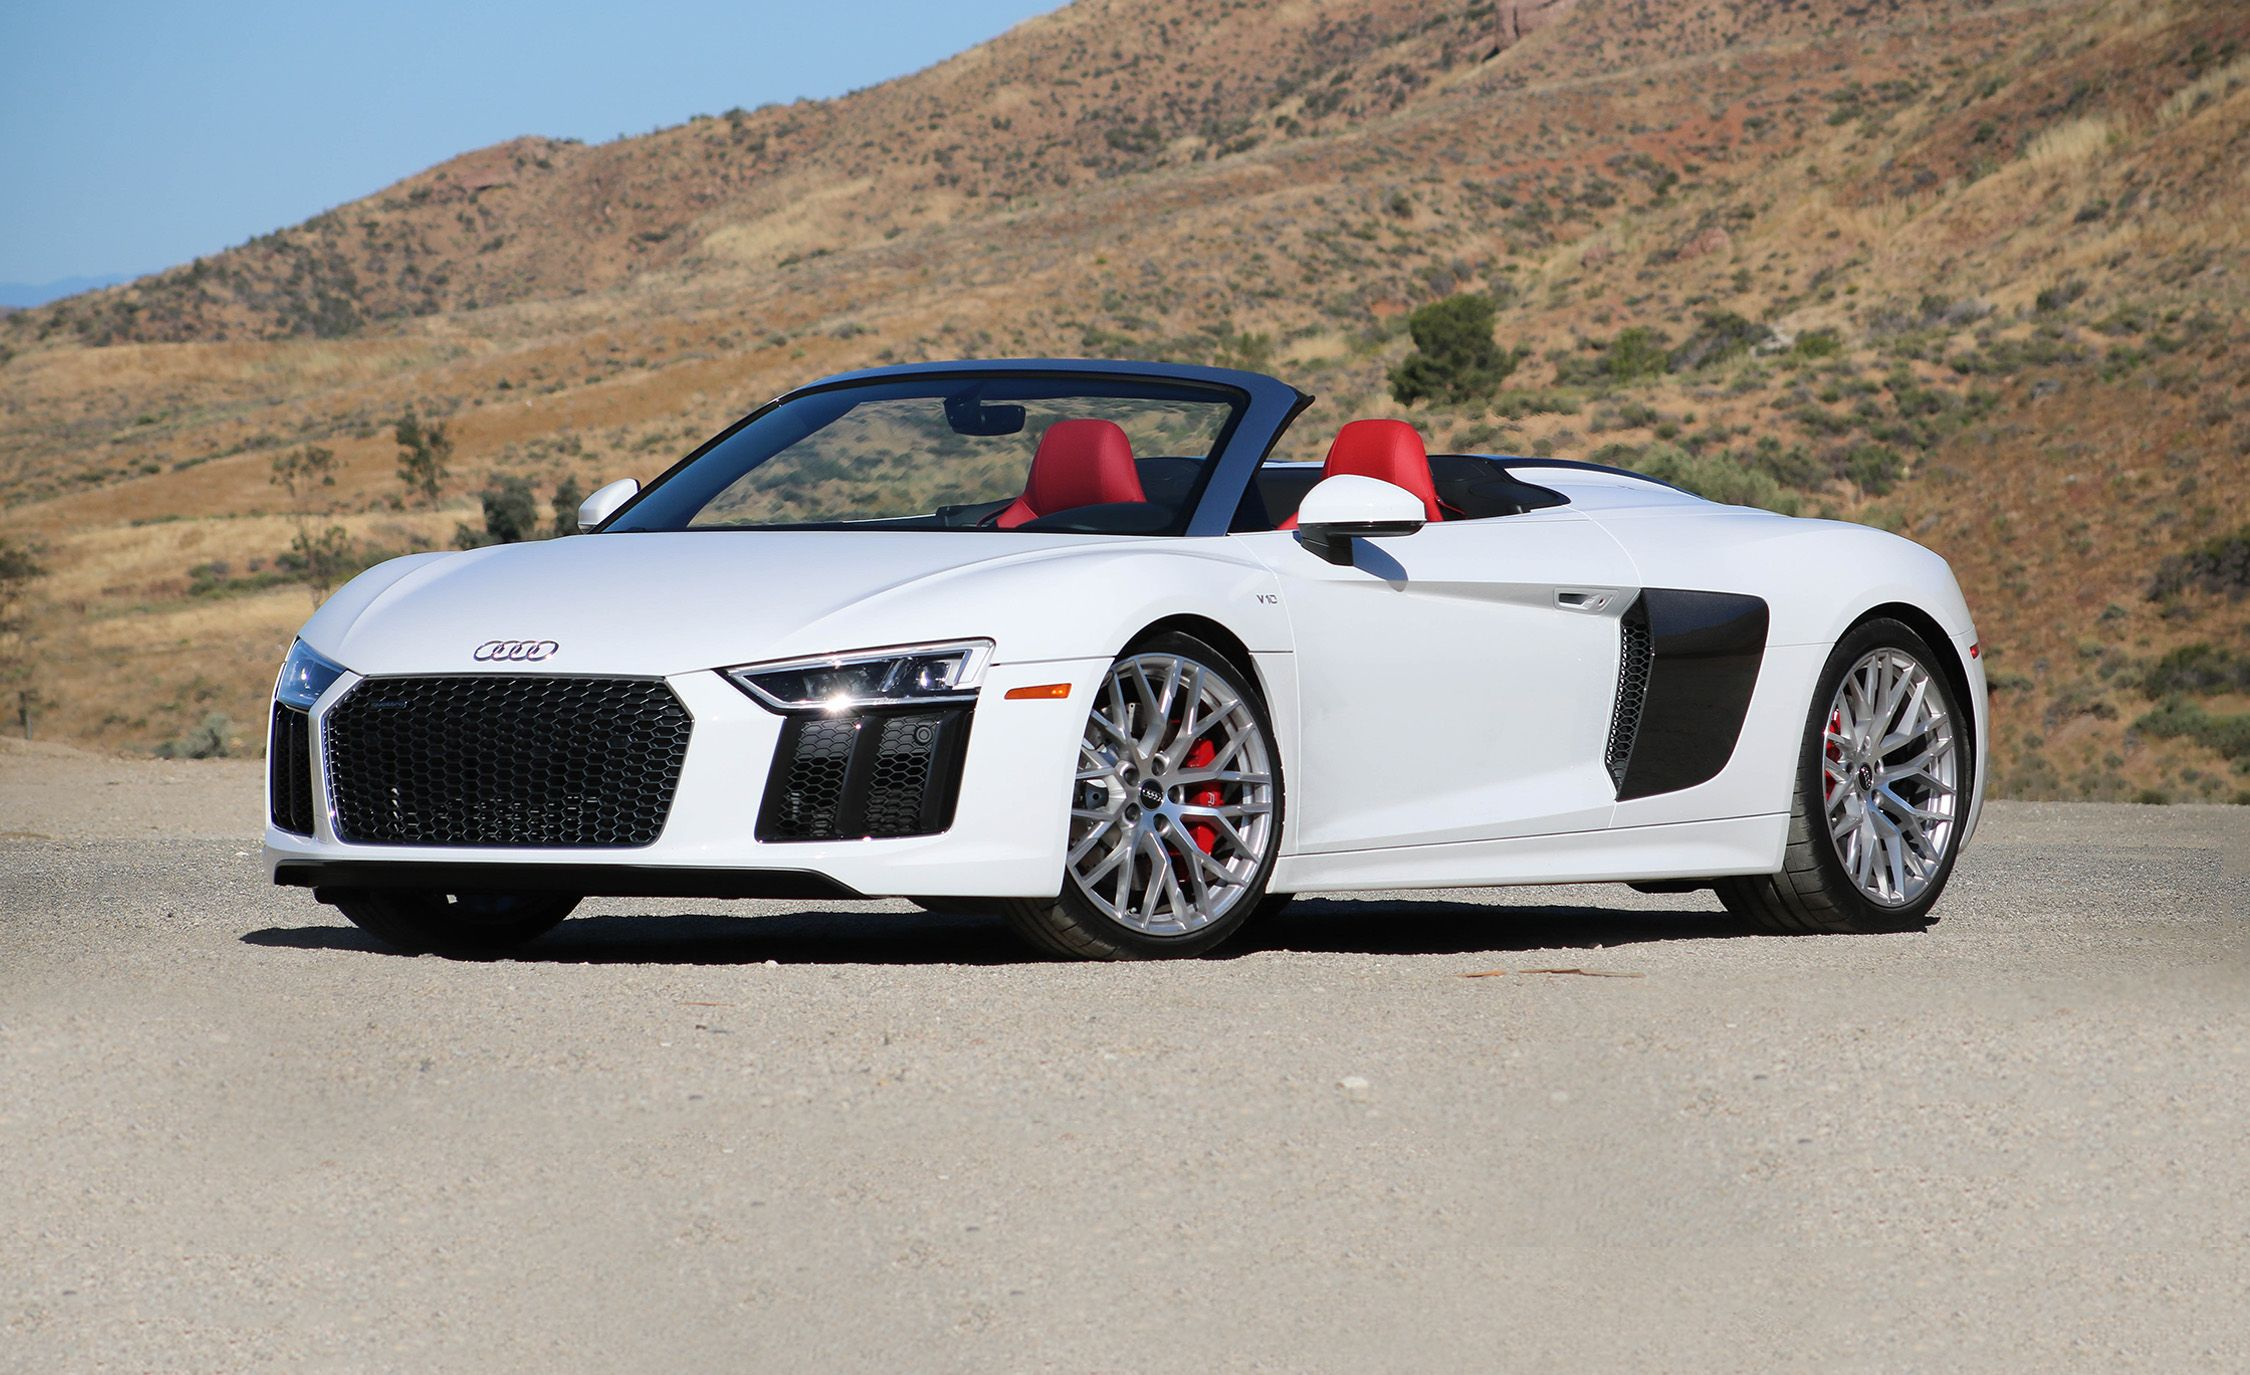 Audi R Spyder Instrumented Test Review Car And Driver - Audi super car